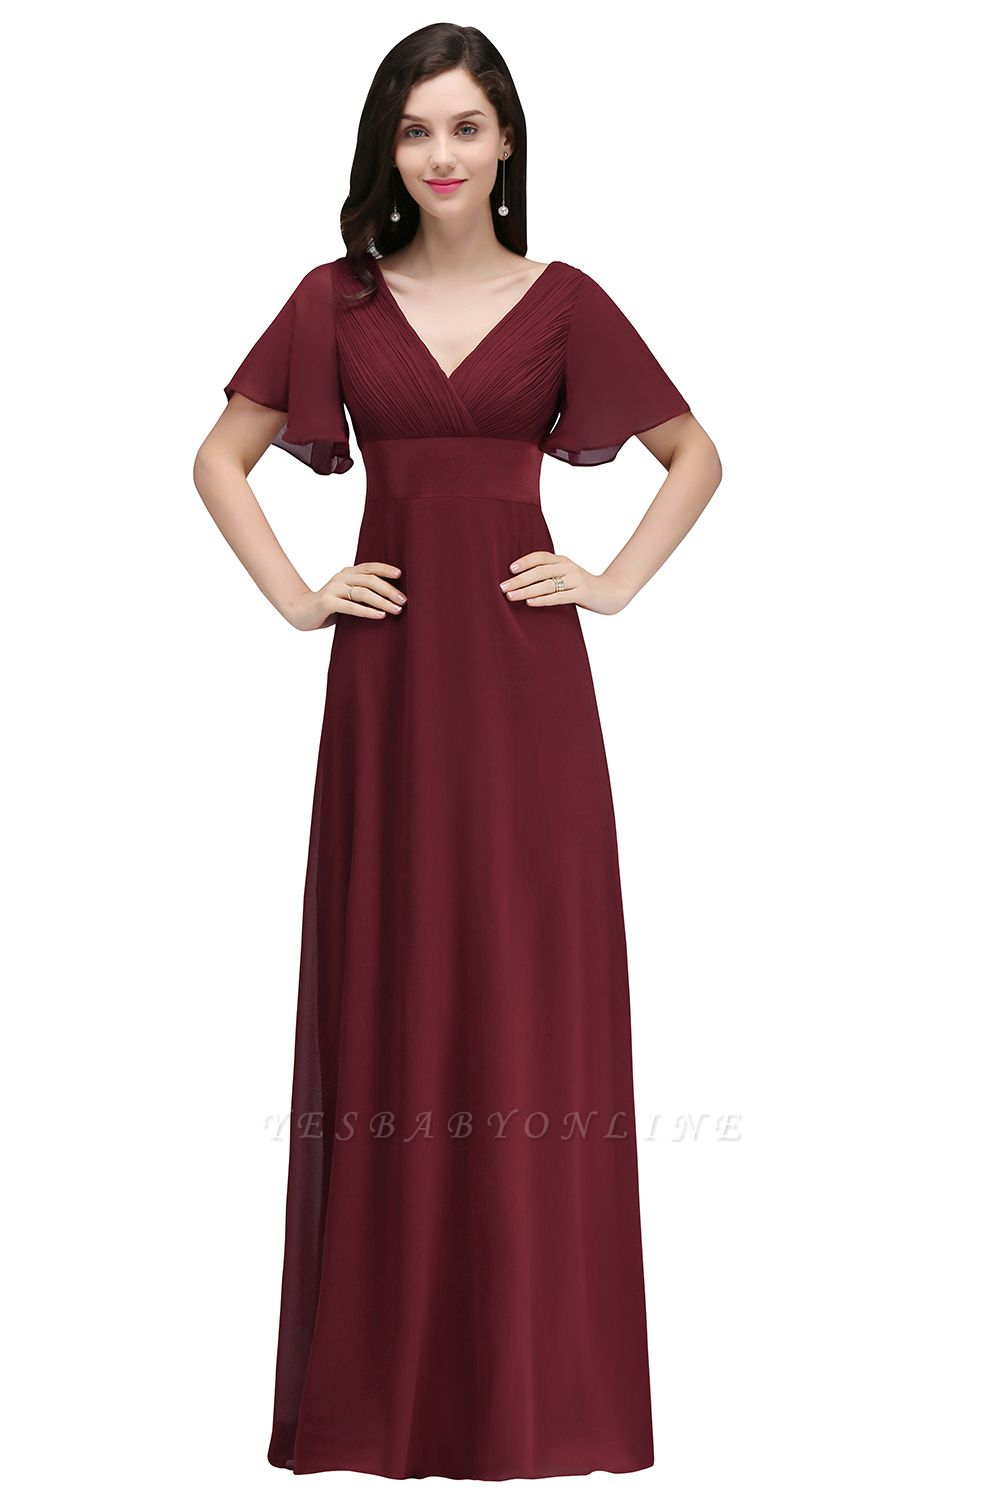 Simple A-Line  V-Neck Short-Sleeves Ruffles Floor-Length Bridesmaid Dresses